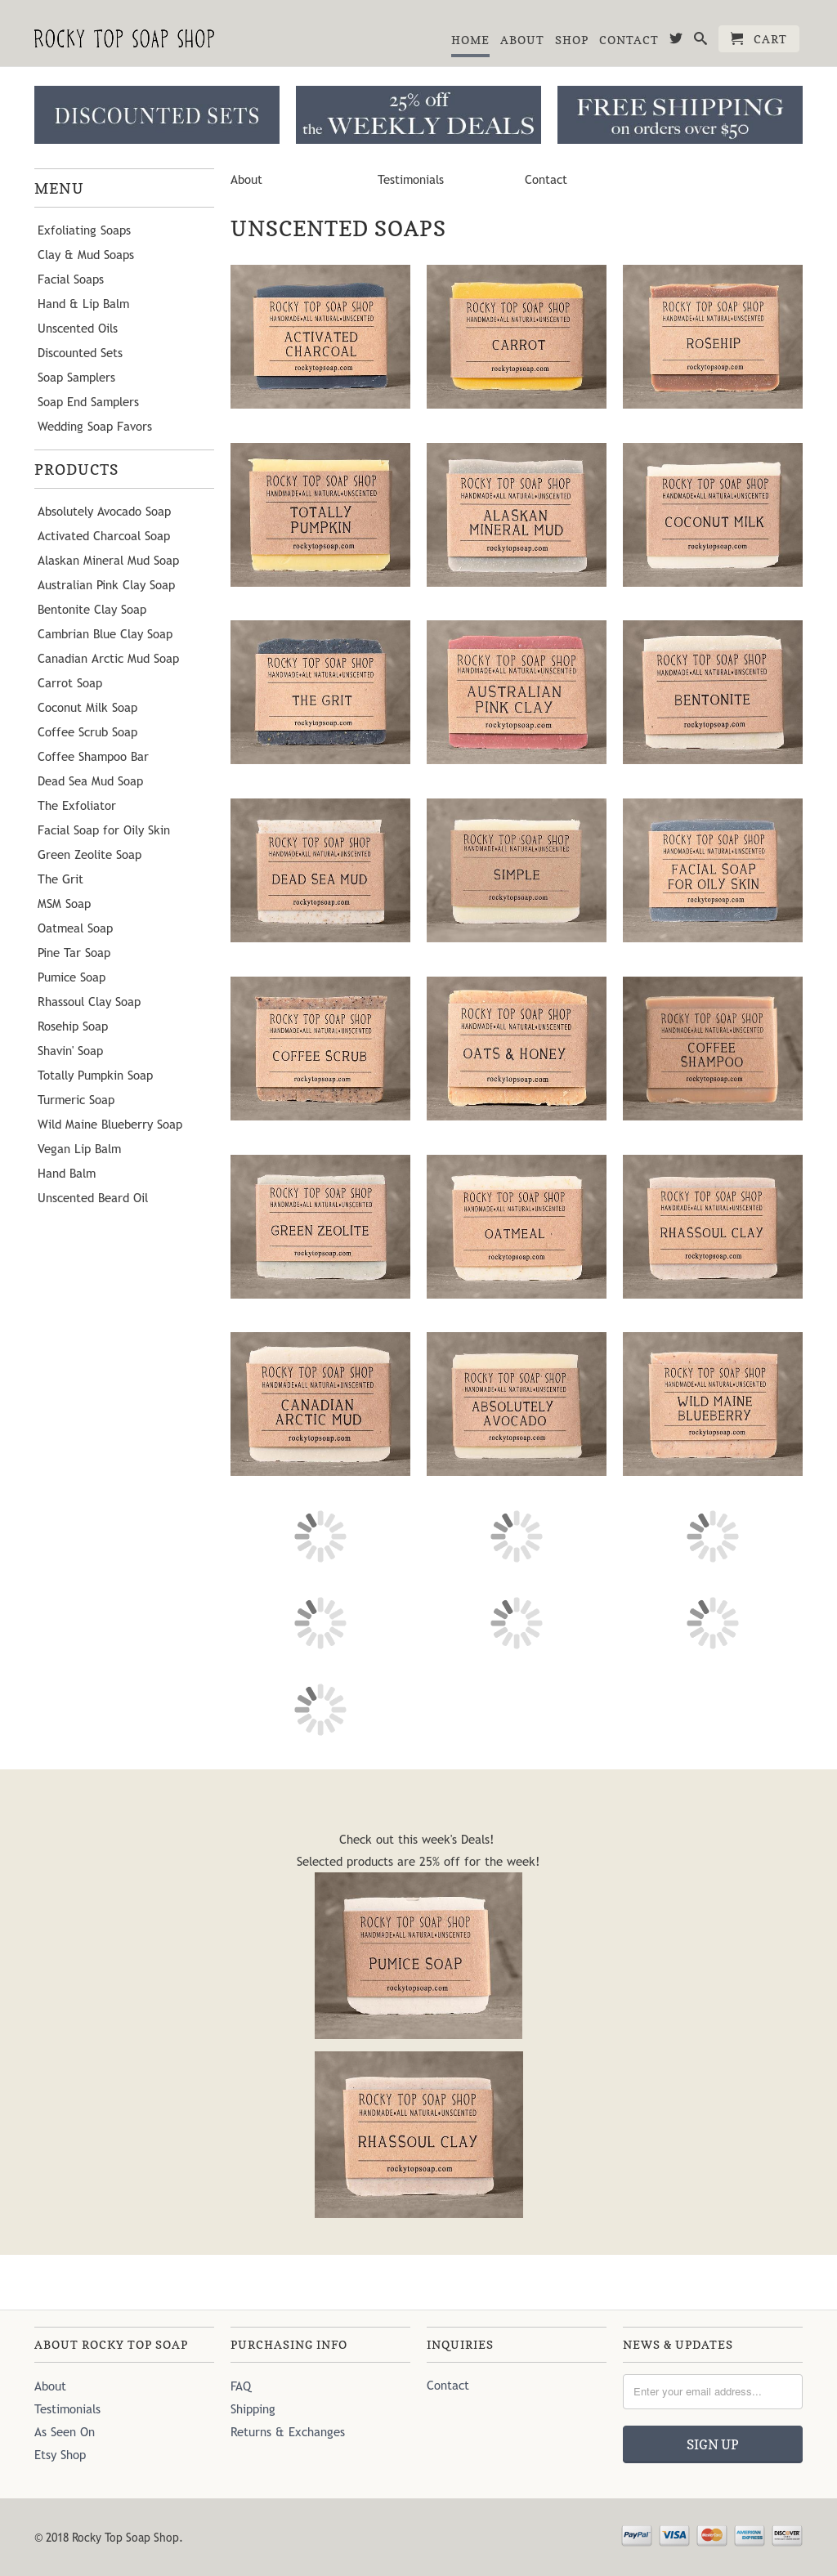 Rocky Top Soap Shop Competitors, Revenue and Employees